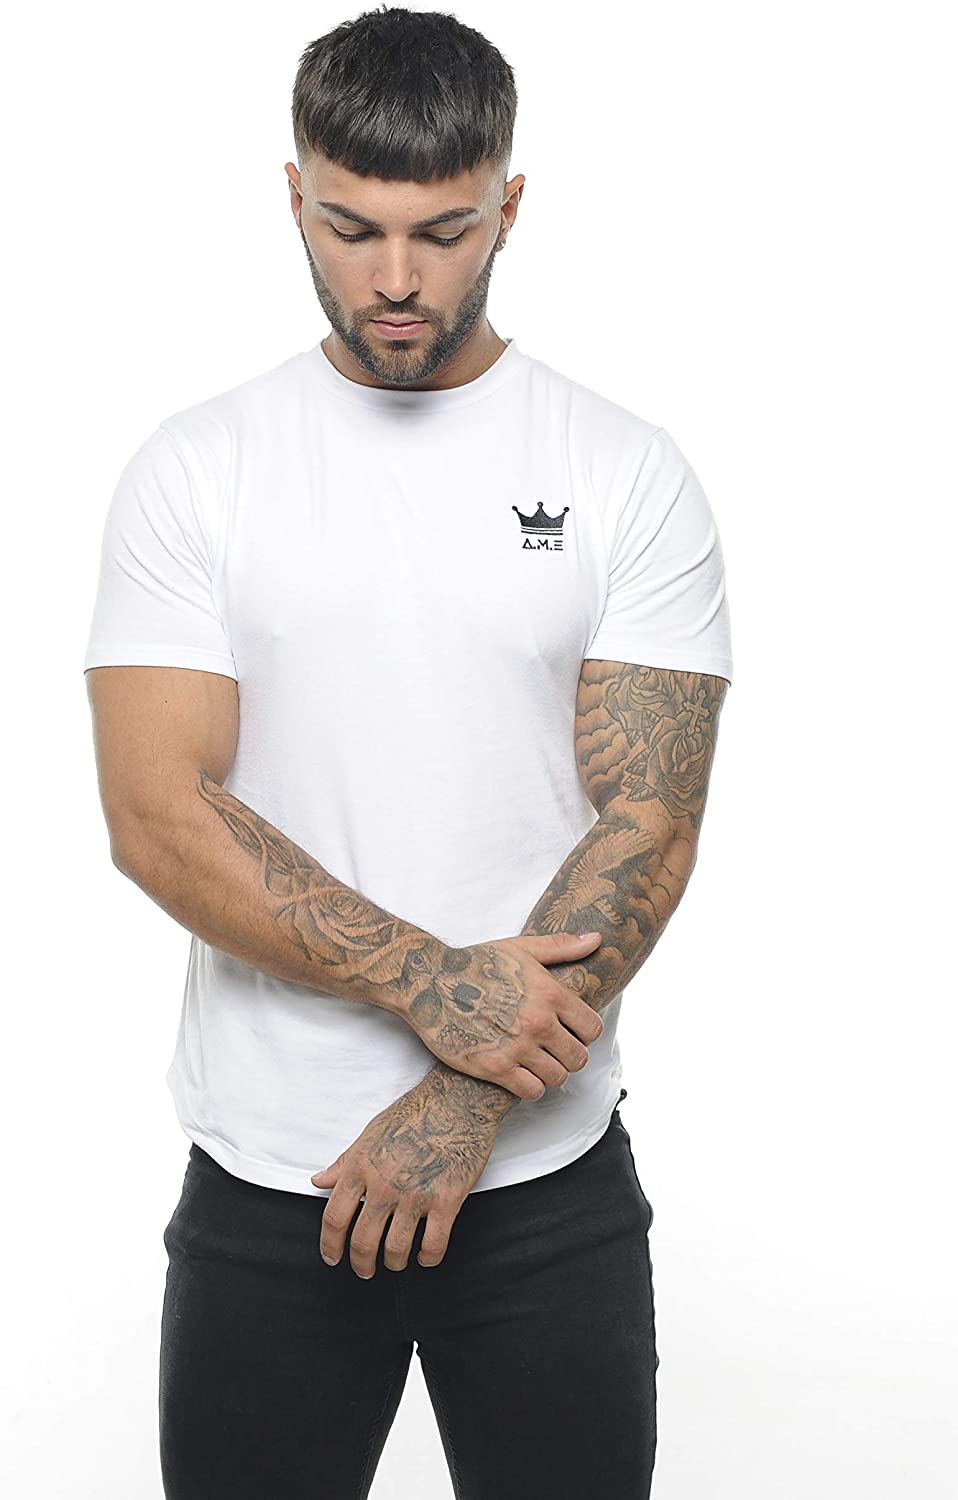 A.M.E Designs Quality Fitted Mens T Shirt Street Wear Gym Wear